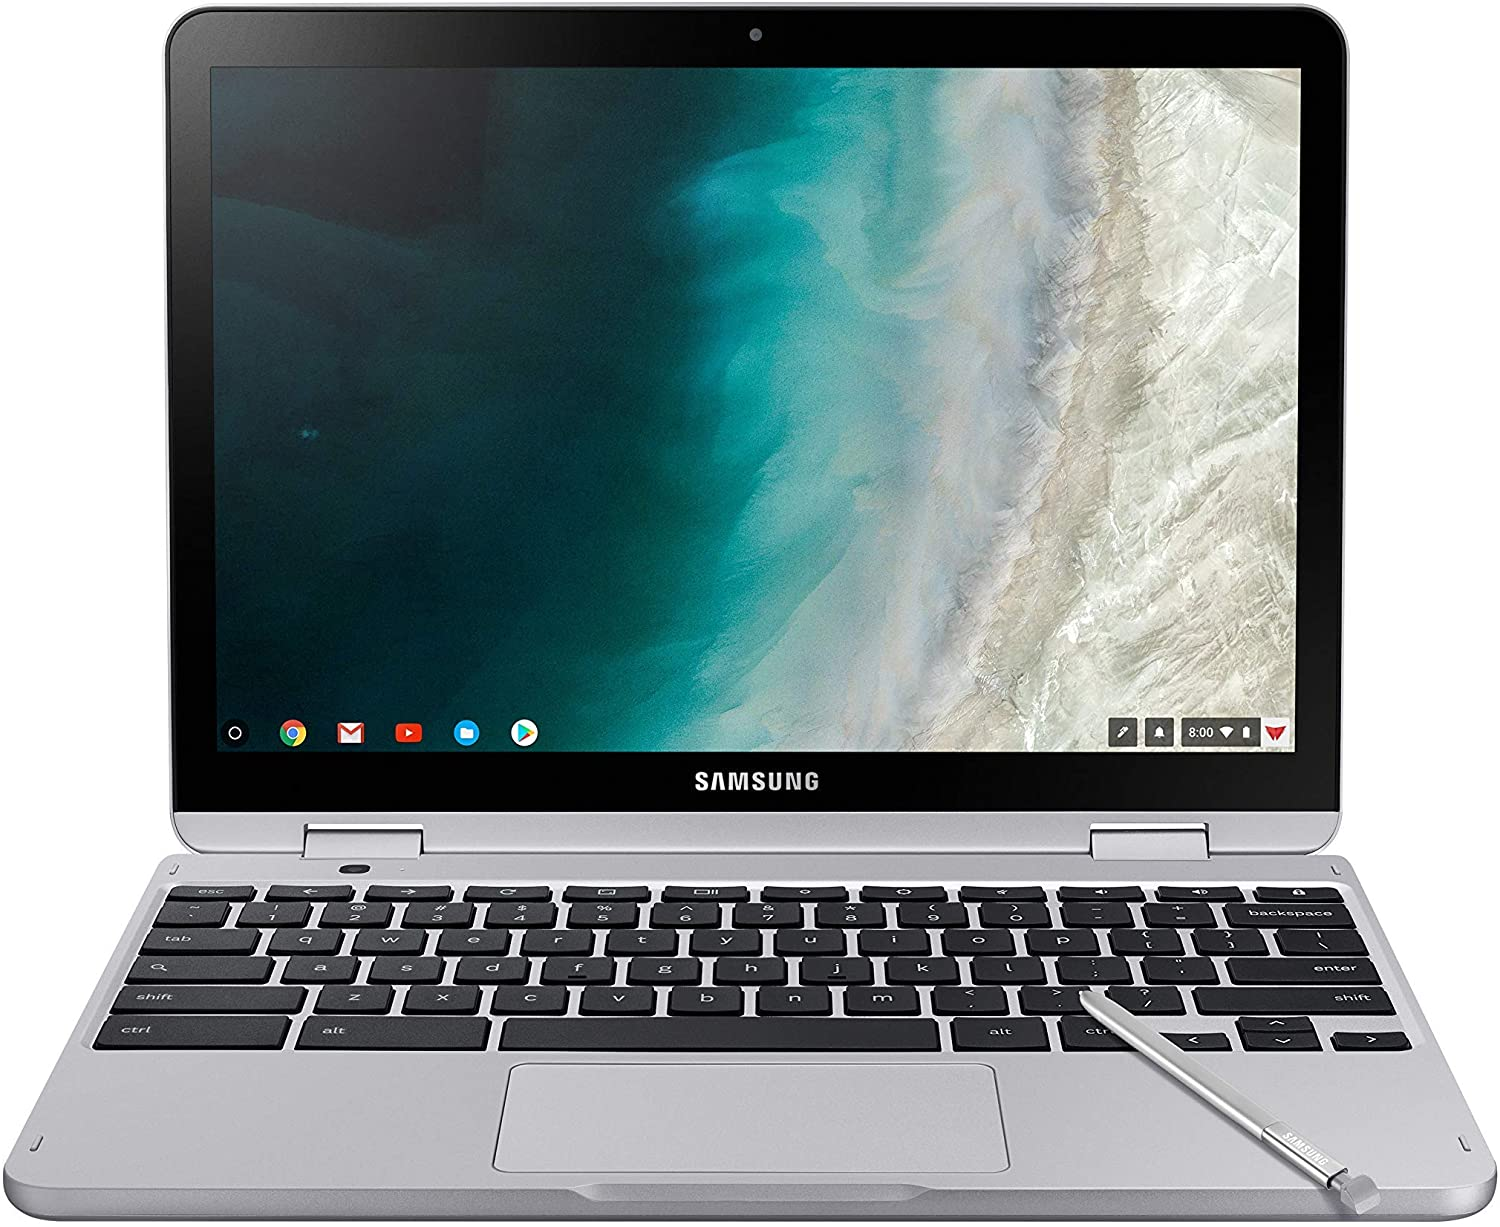 "Samsung Chromebook Plus V2, 2-in-1, 4GB RAM, 64GB eMMC, 13MP Camera, Chrome OS, 12.2"", 16:10 Aspect Ratio, Light Titan (XE520QAB-K03US) (Renewed)"